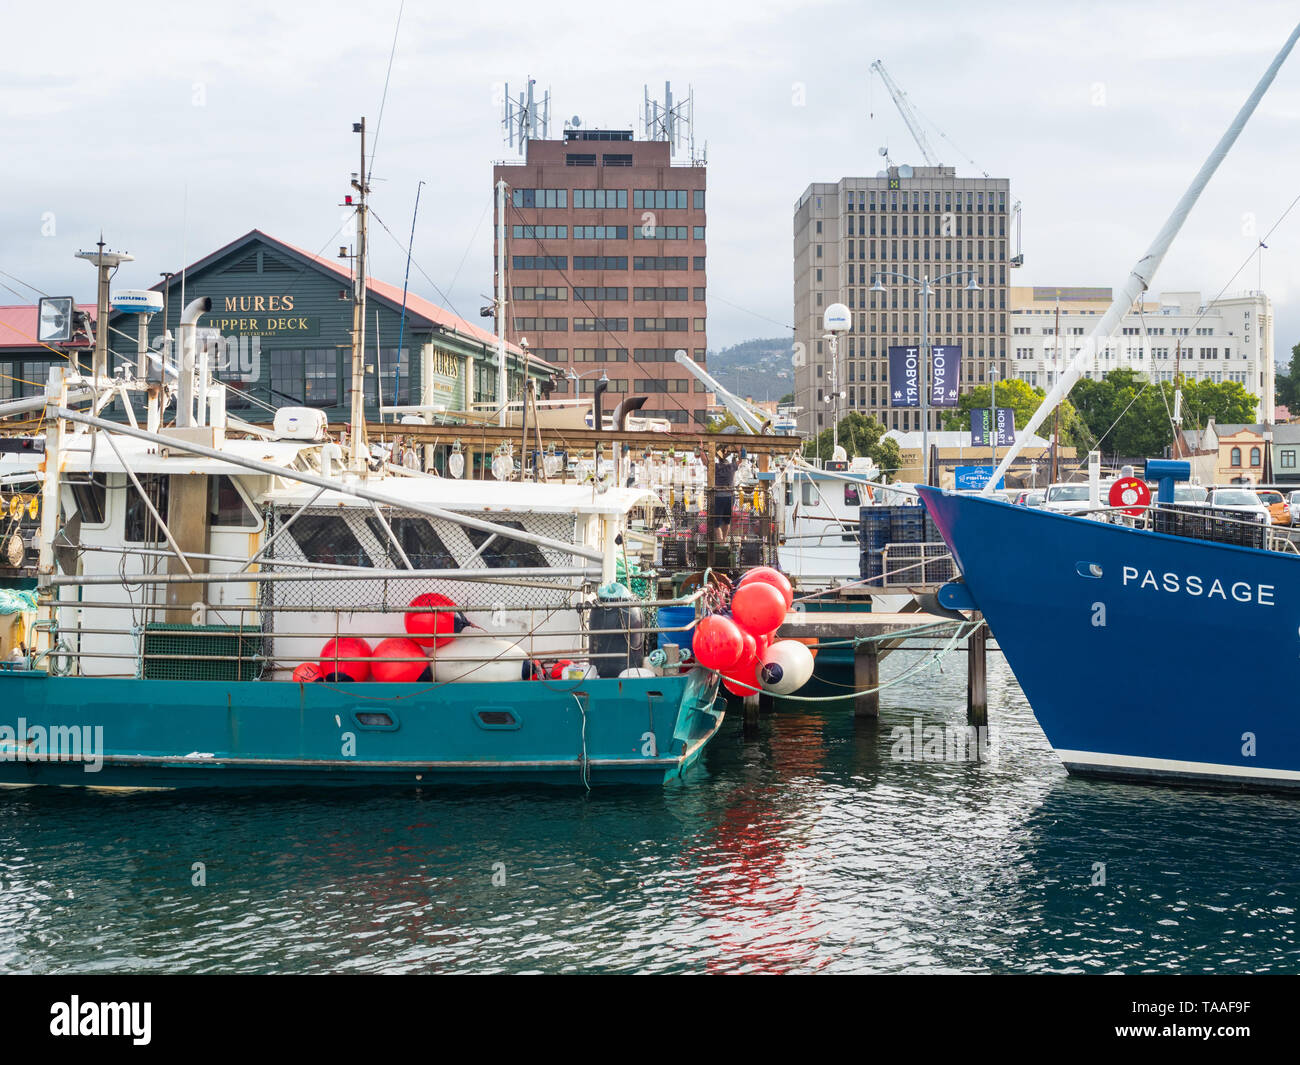 TASMANIA, AUSTRALIA - FEBRUARY 16, 2019: Fishing boats moored at Elizabeth Street Pier in Hobart, Tasmania, Australia. Stock Photo